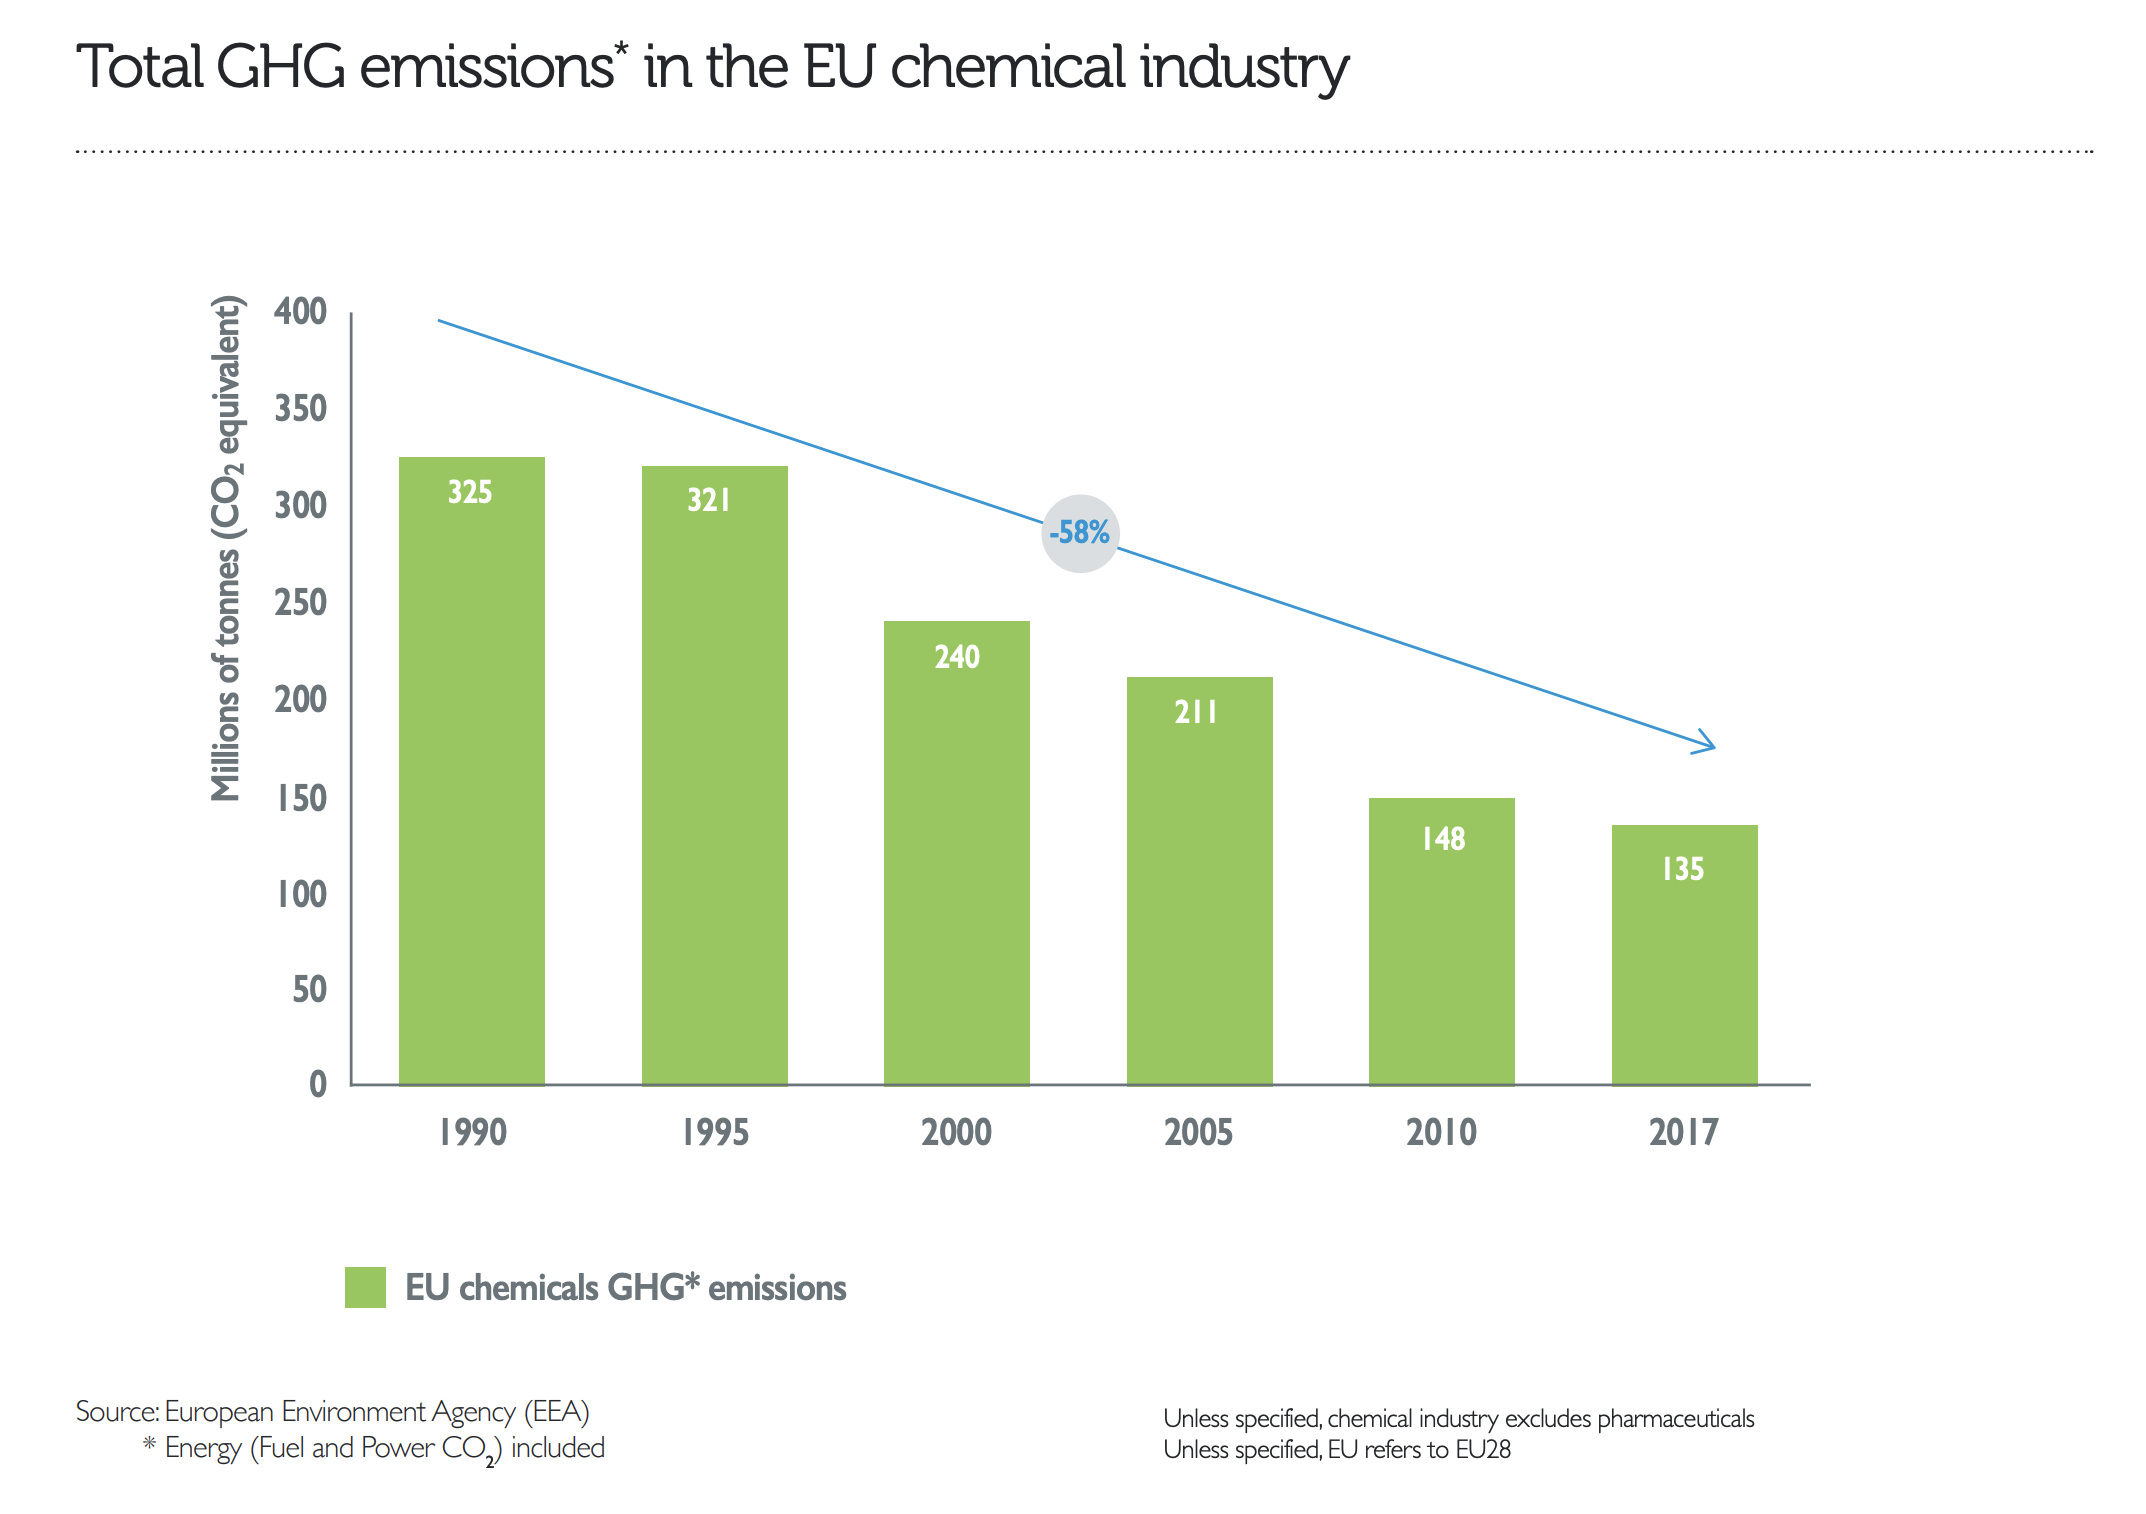 The sector's emissions have fallen by 60% in the past 30 years